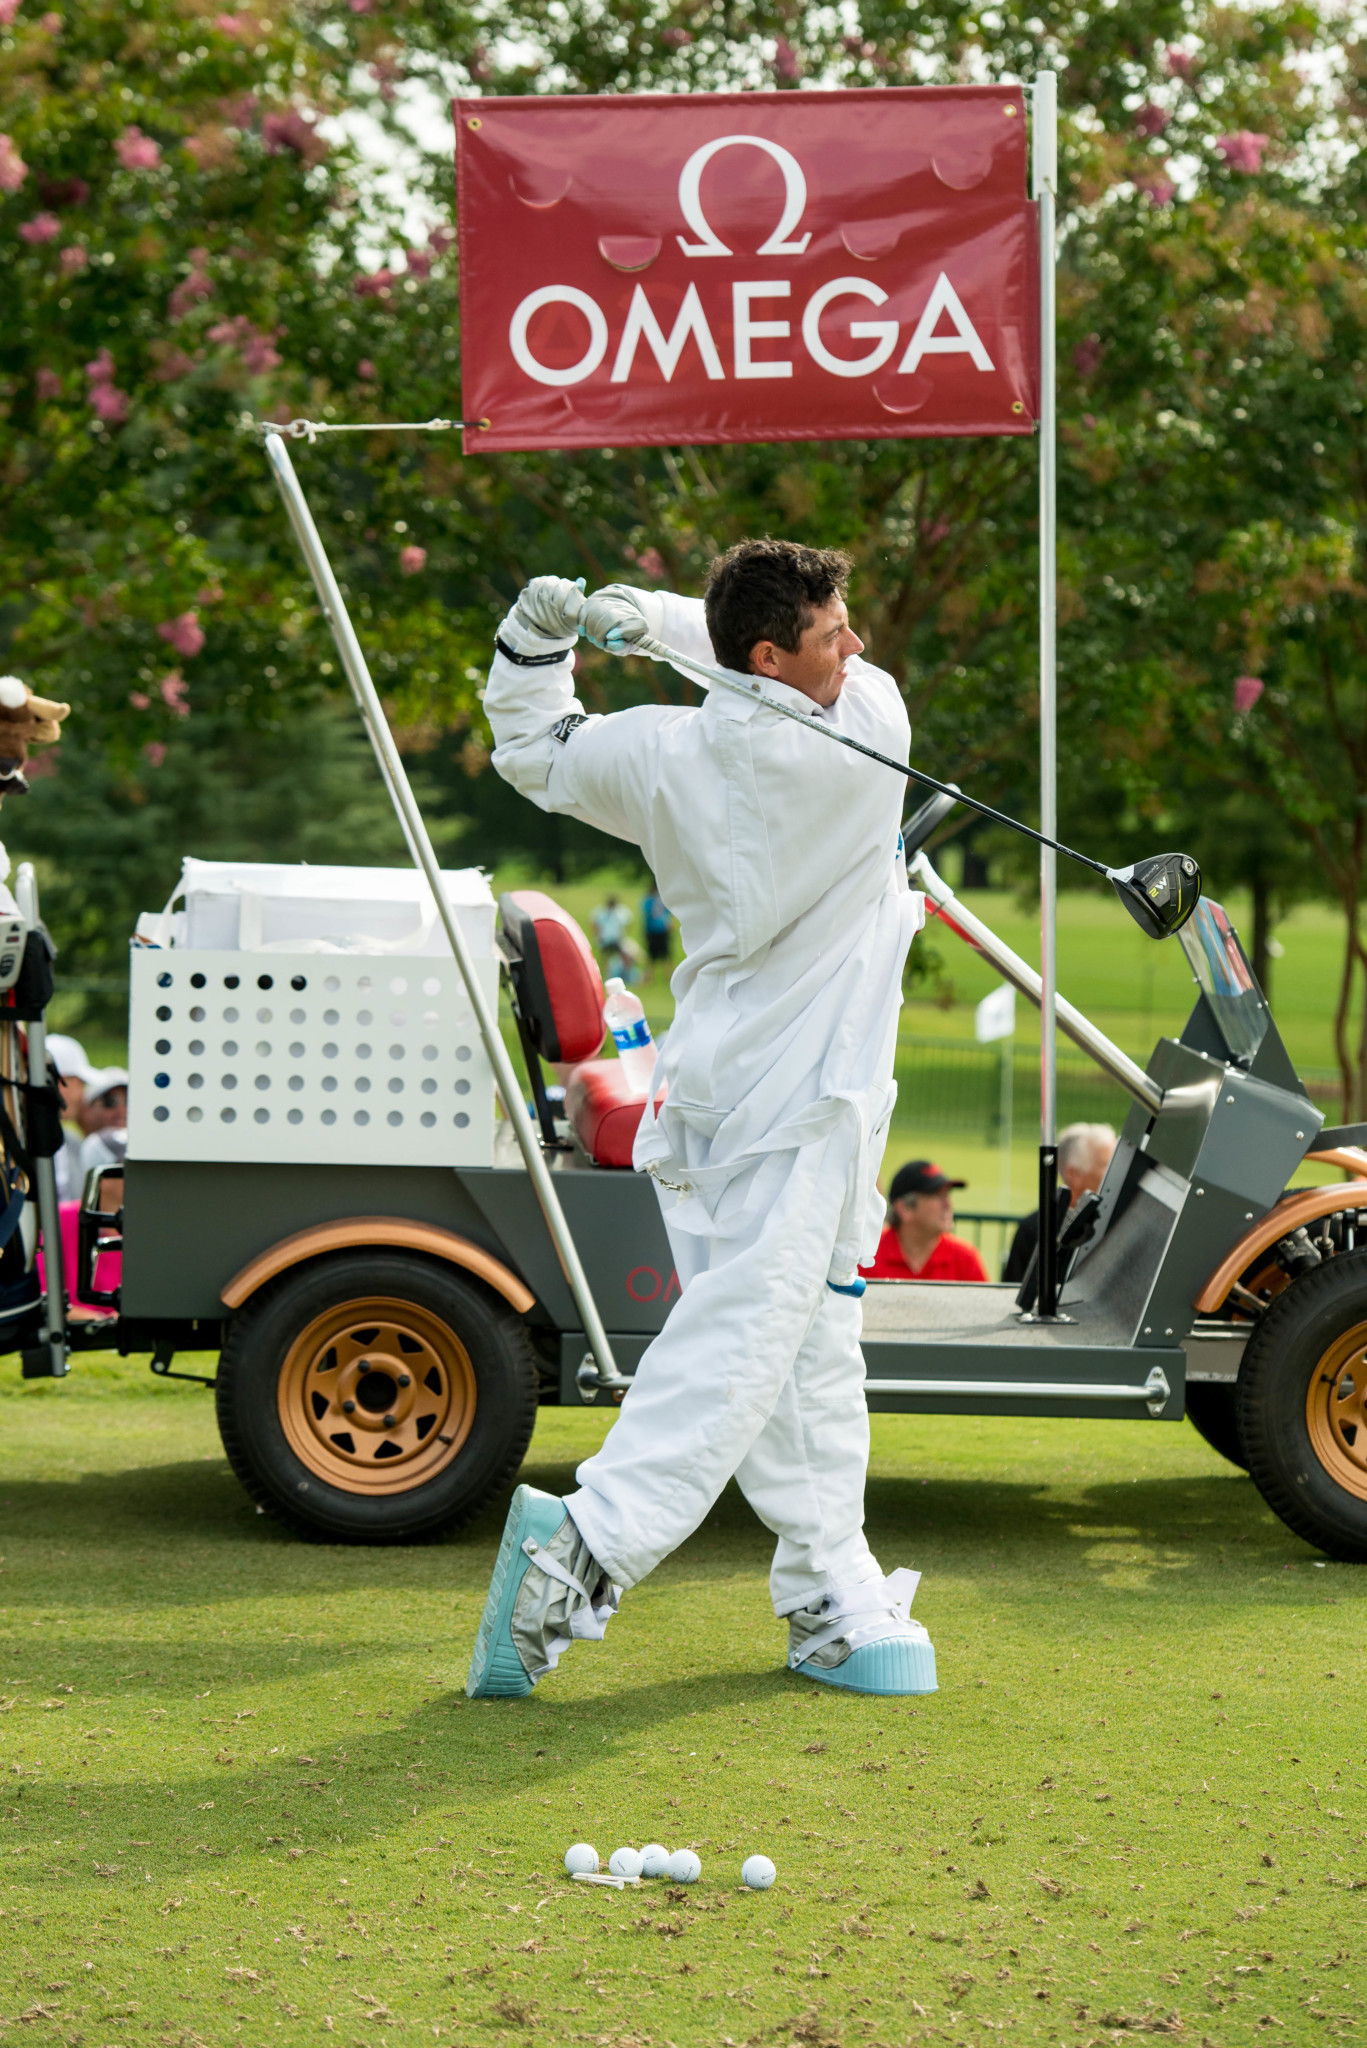 Rory McIlroy Hits Drive in Astronaut Uniform - OMEGA